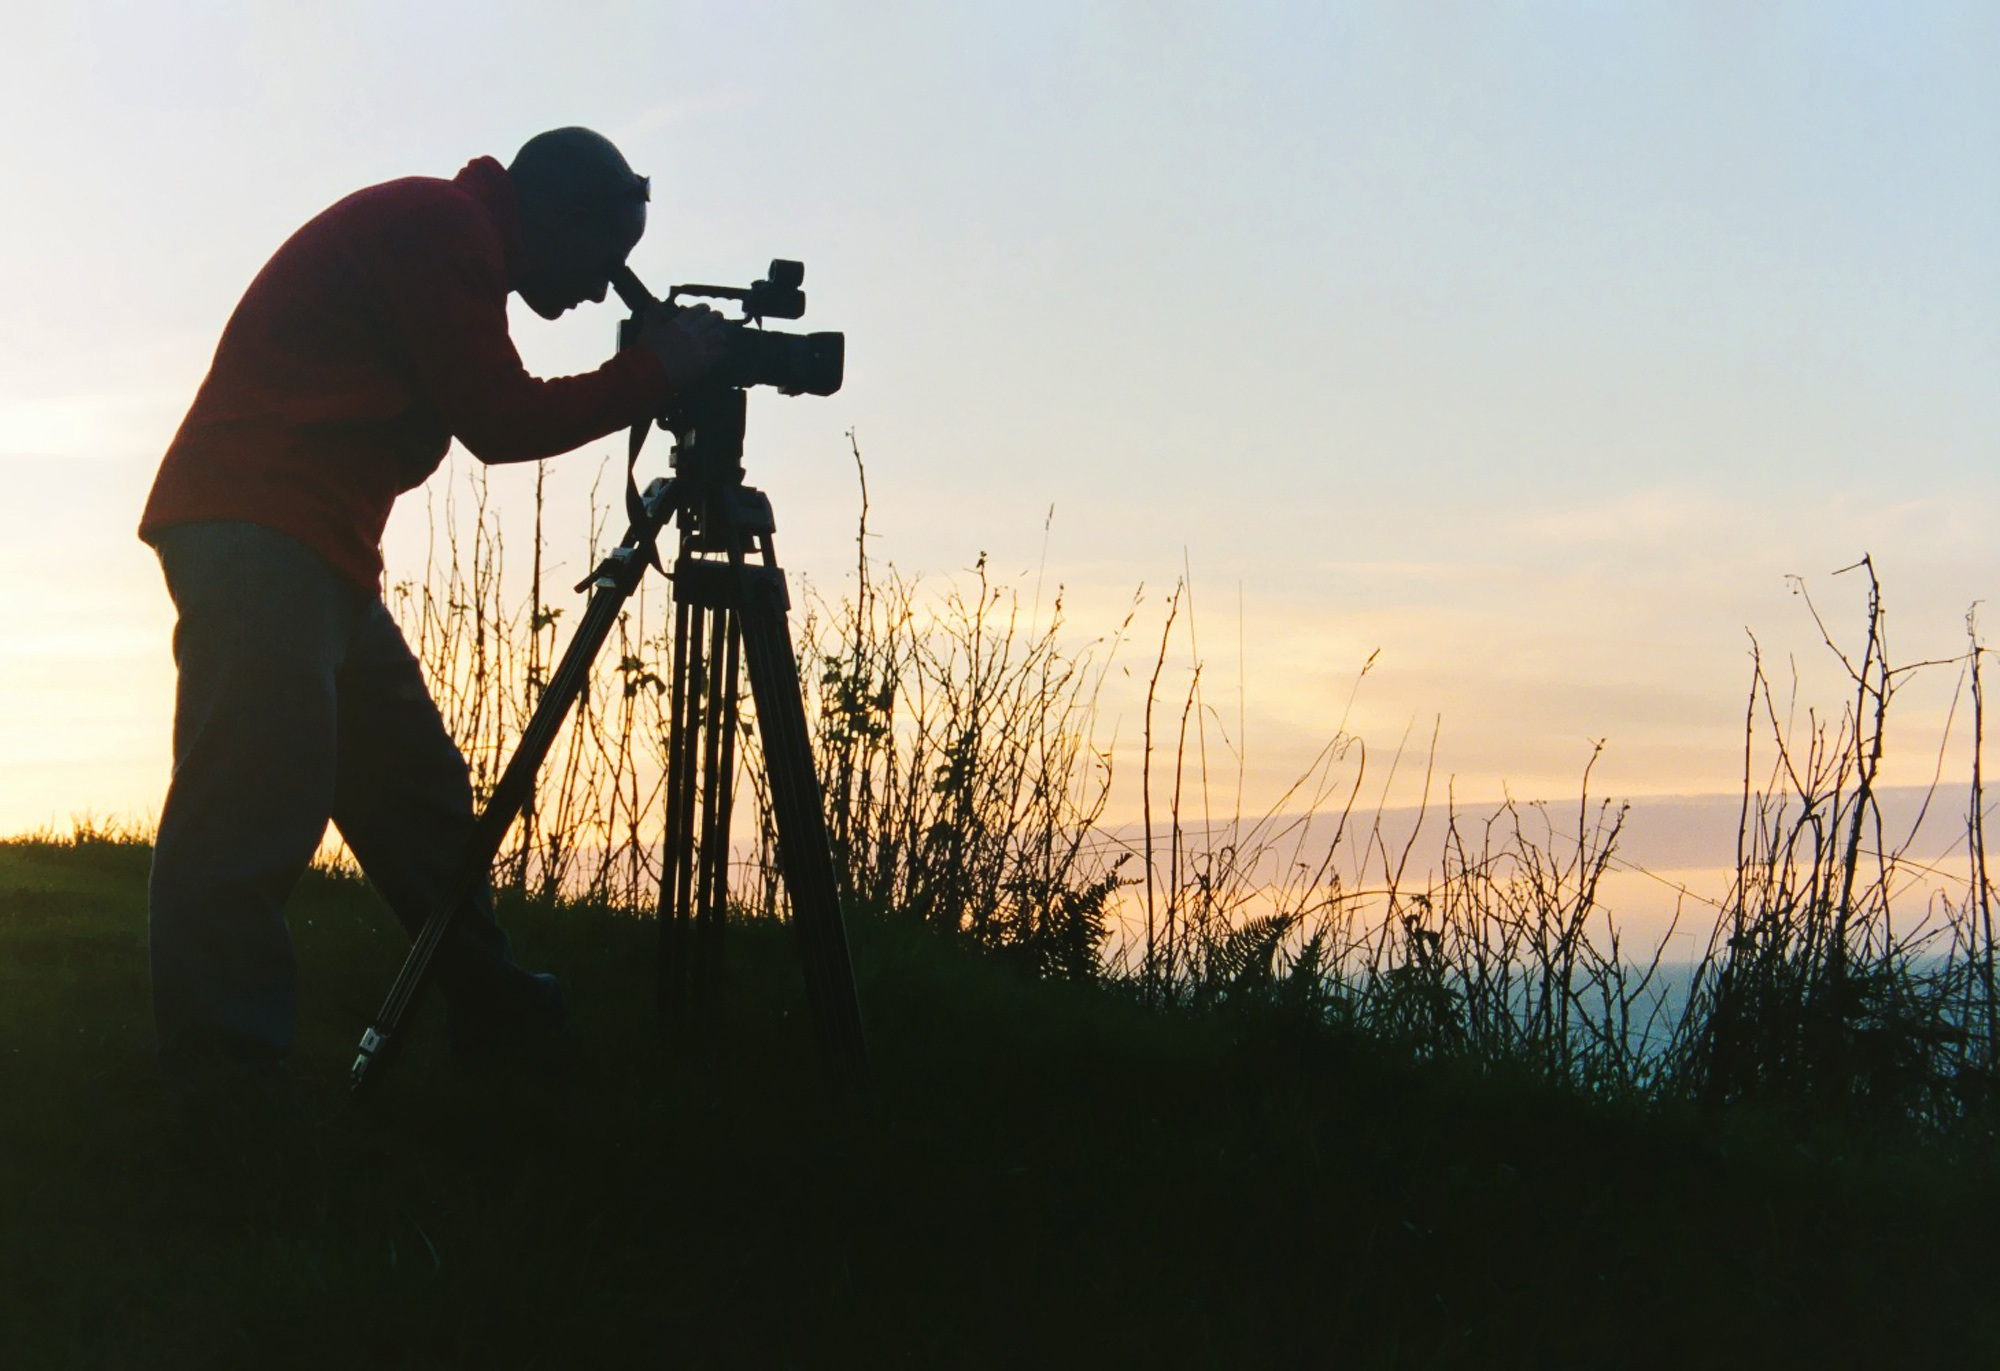 360-improve-your-documentary-films-with-three-important-tips-Dppfs